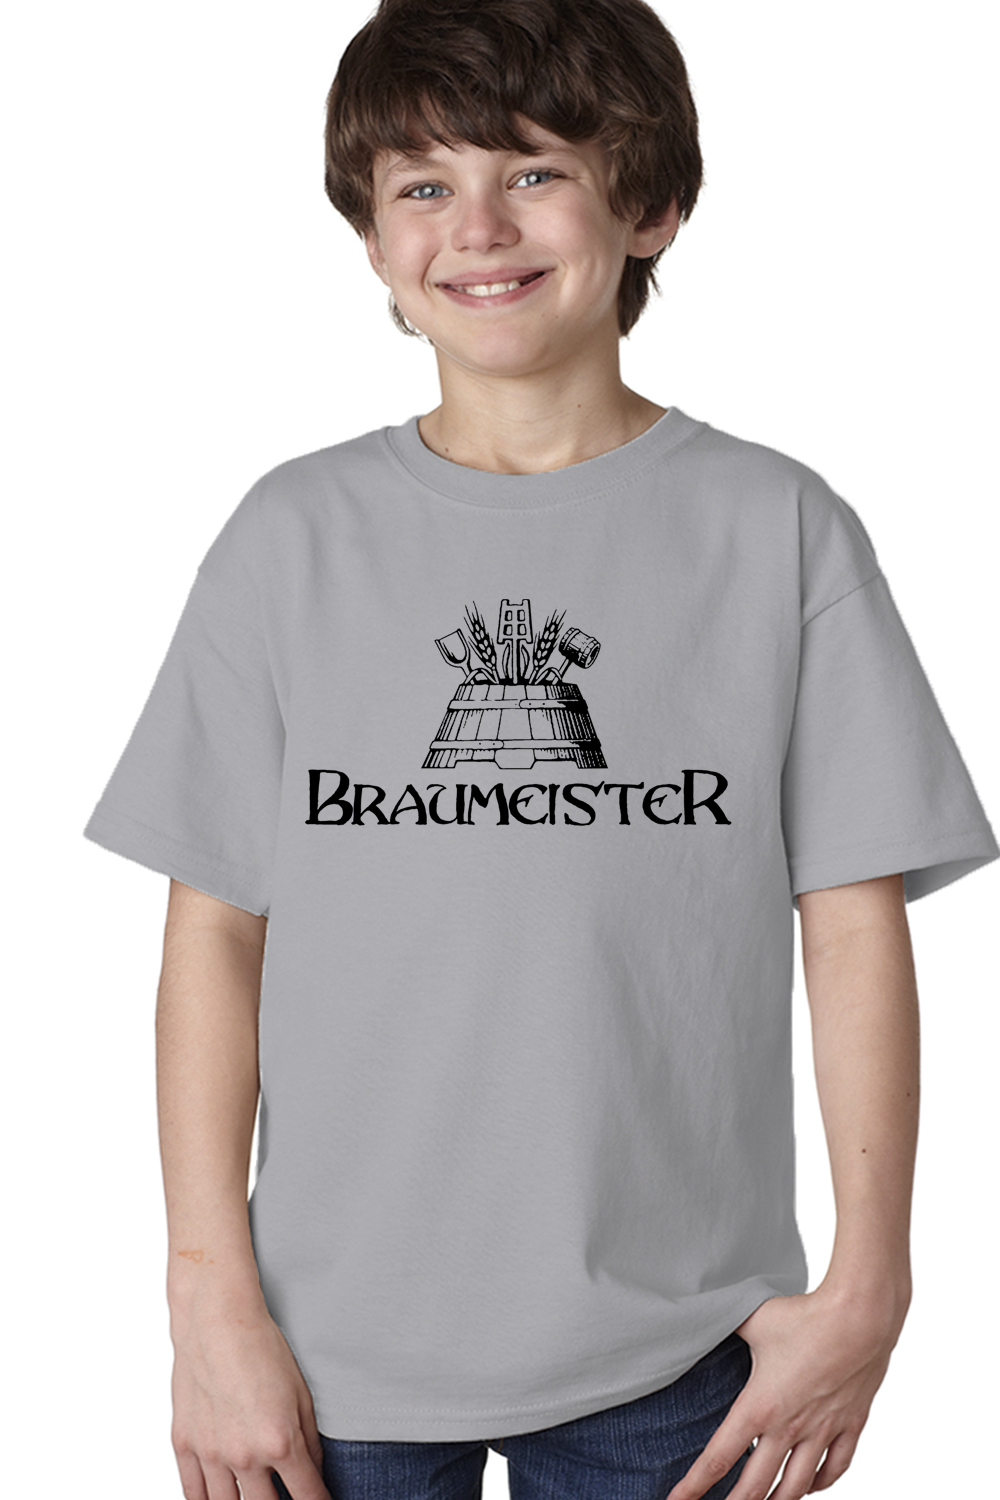 braumeister youth unisex t shirt craft brew home brewer. Black Bedroom Furniture Sets. Home Design Ideas